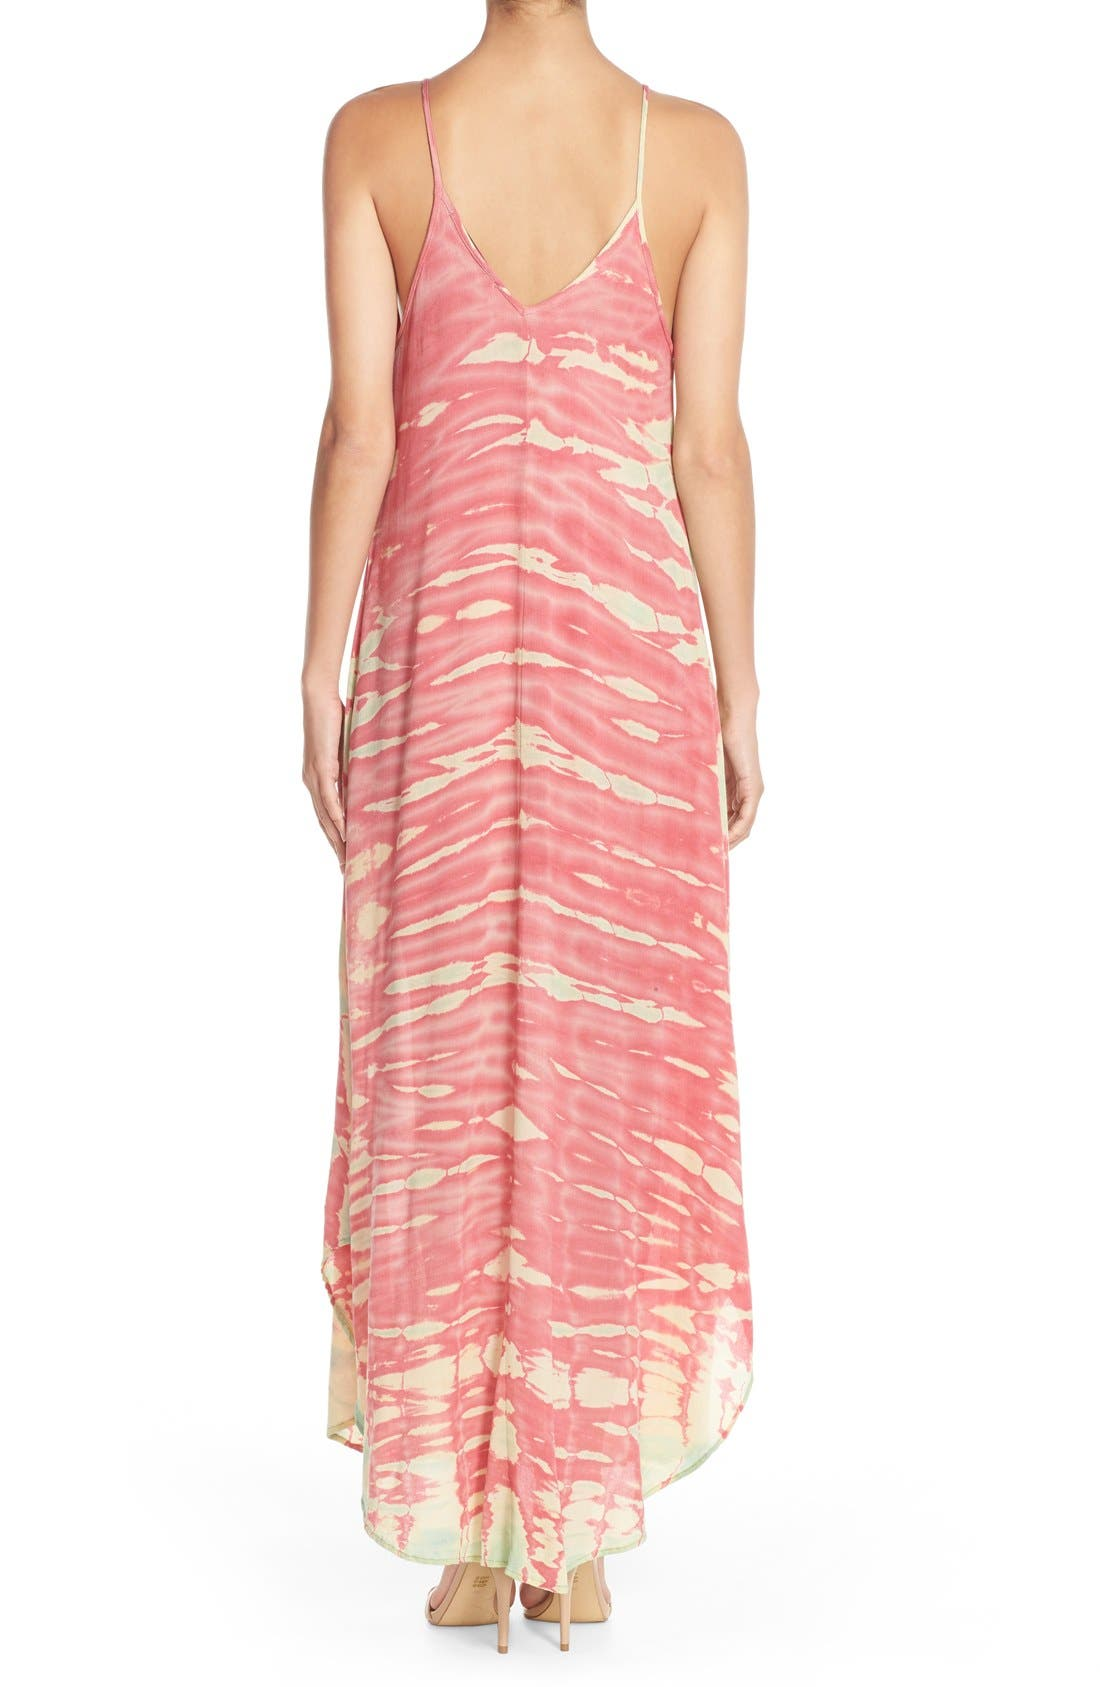 Tie Dye A-Line Maxi Dress,                             Alternate thumbnail 2, color,                             Pink/ Mint Special